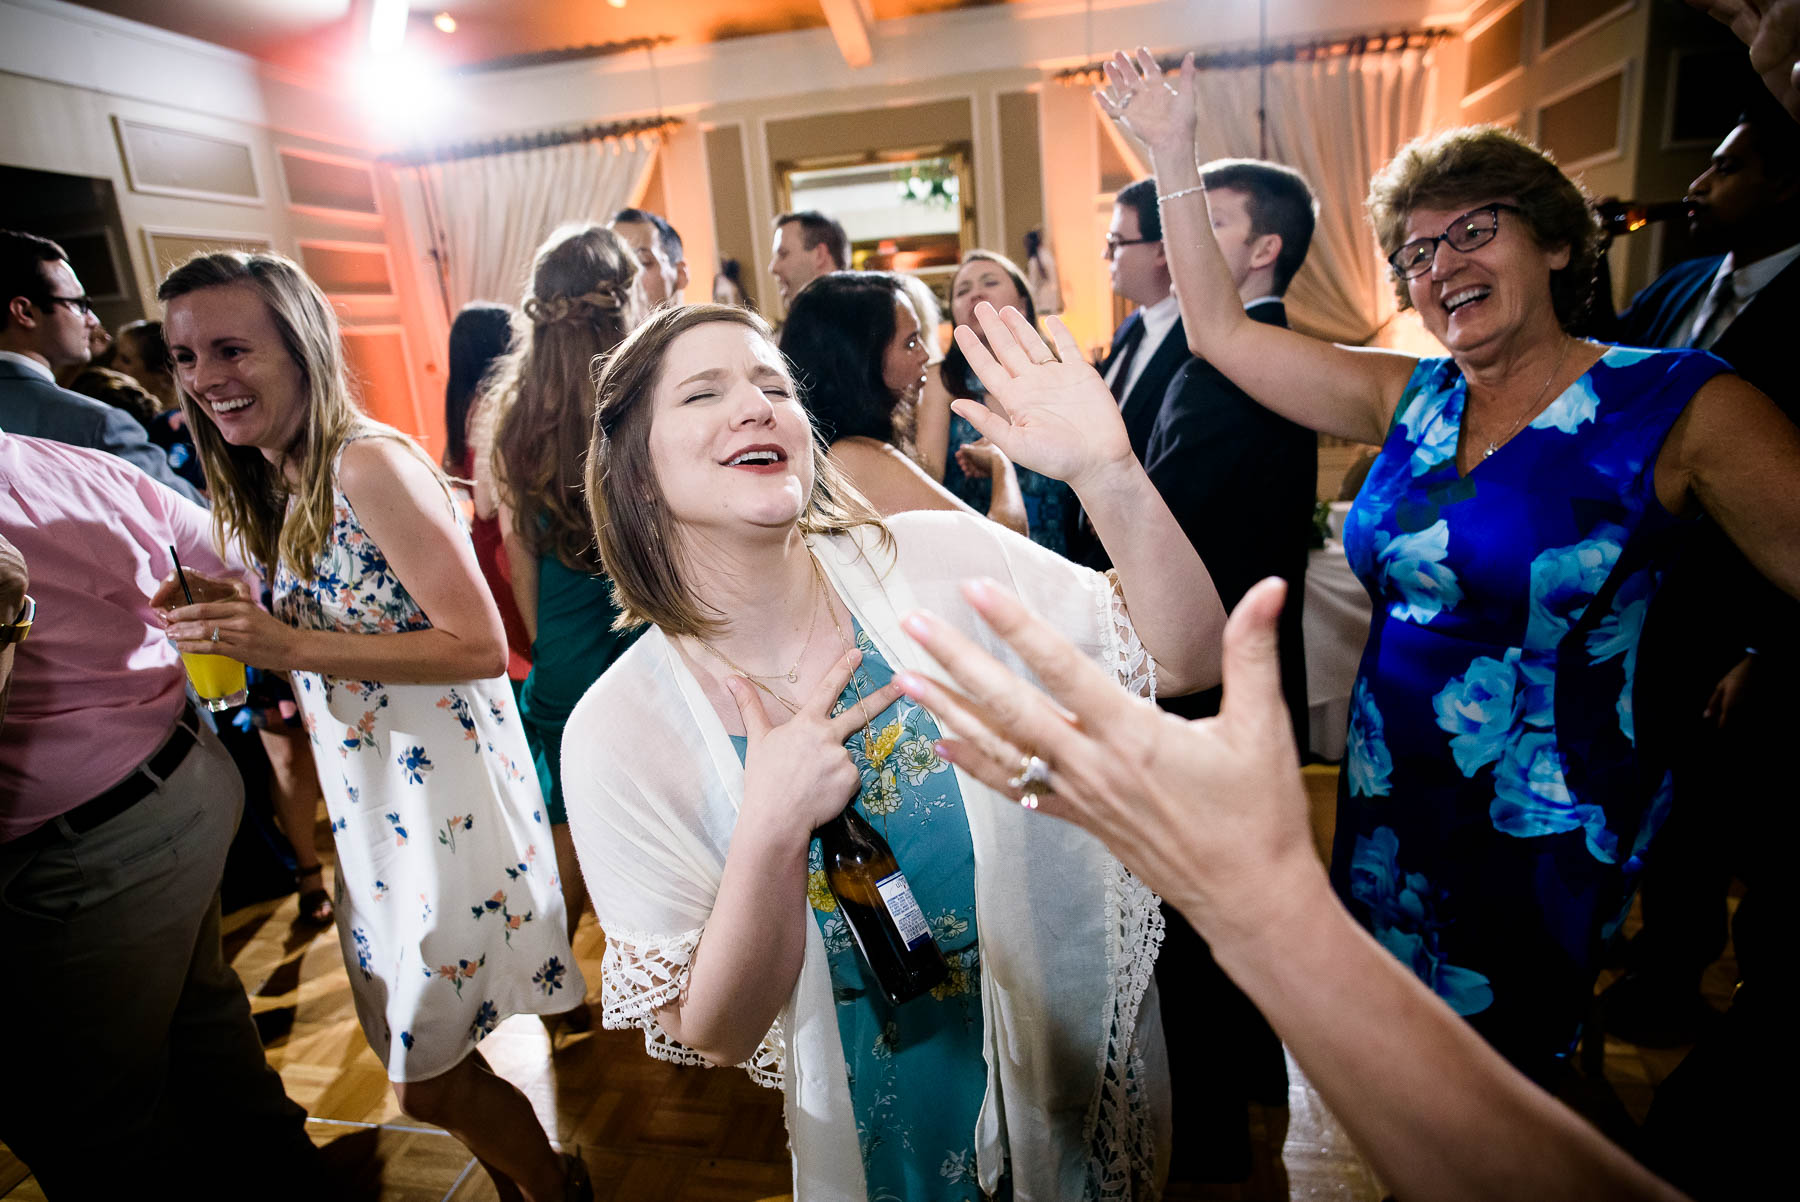 Dancing during a St. Charles Country Club wedding.